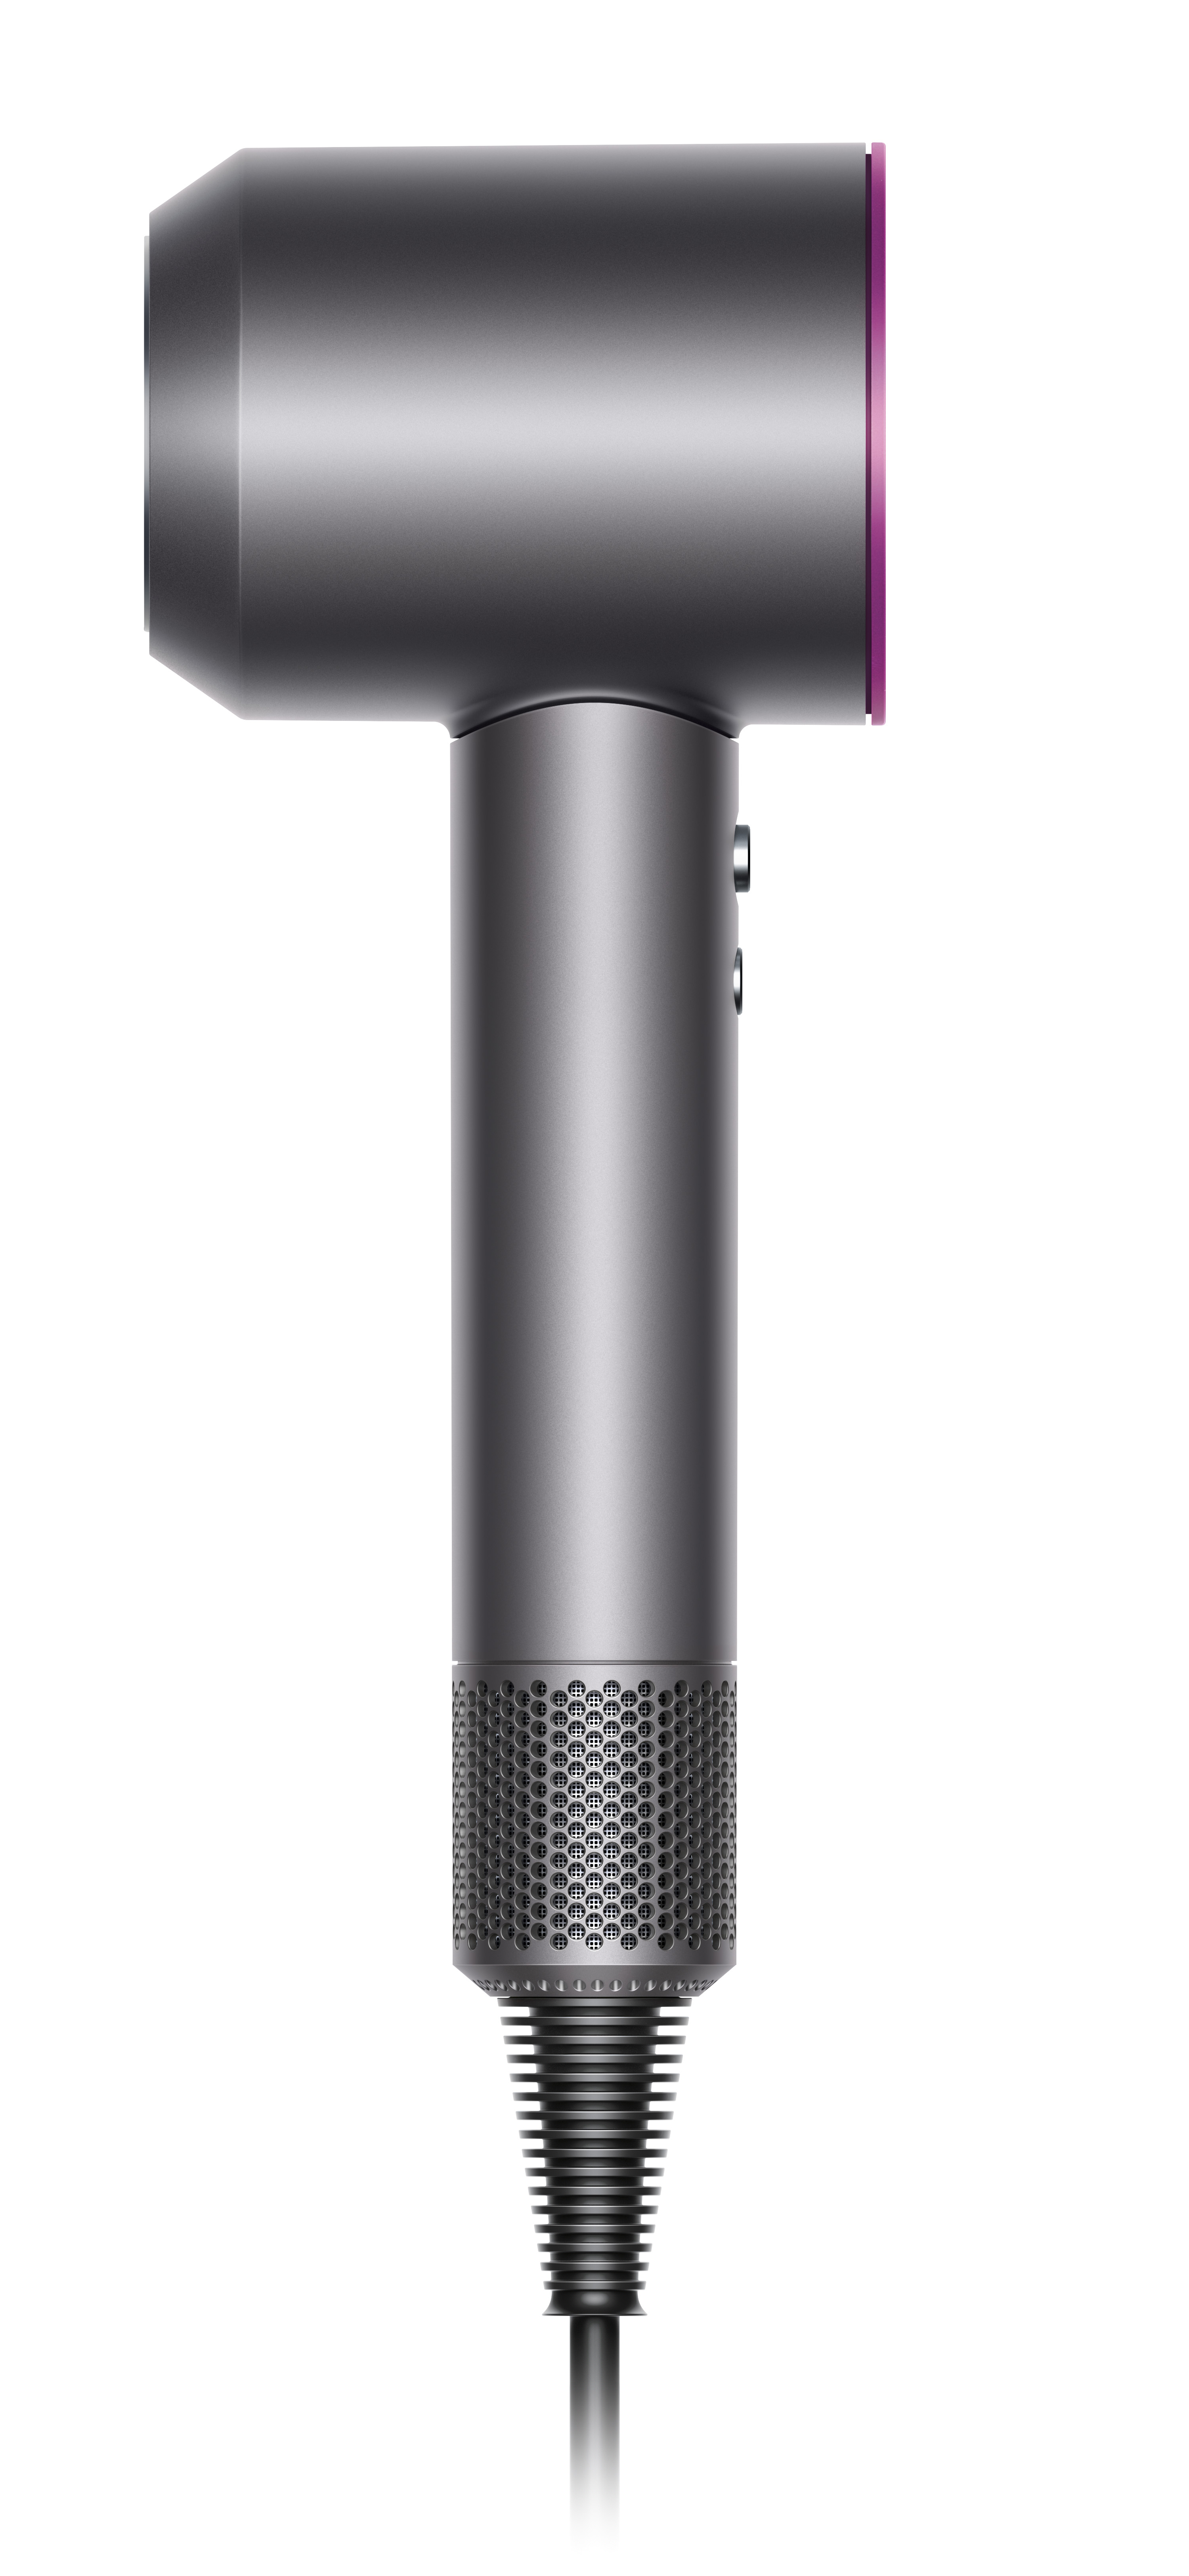 thumbnail 13 - Dyson Supersonic hair dryer - Refurbished